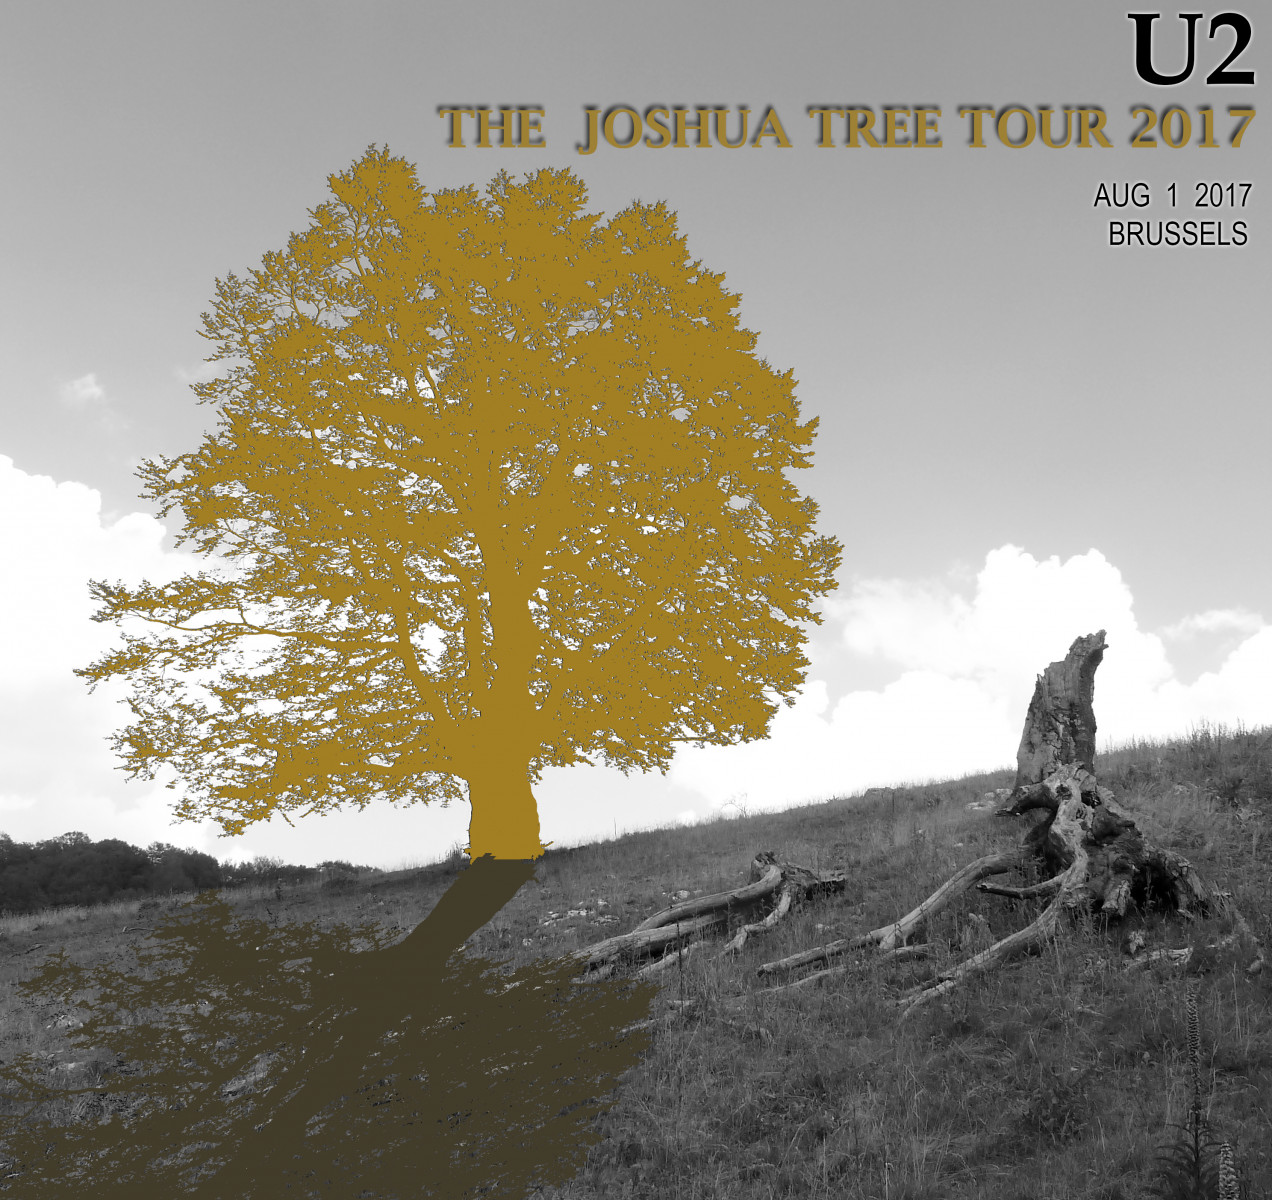 U2  -  The Joshua Tree Tour 2017   -   Brussels August 1  2017